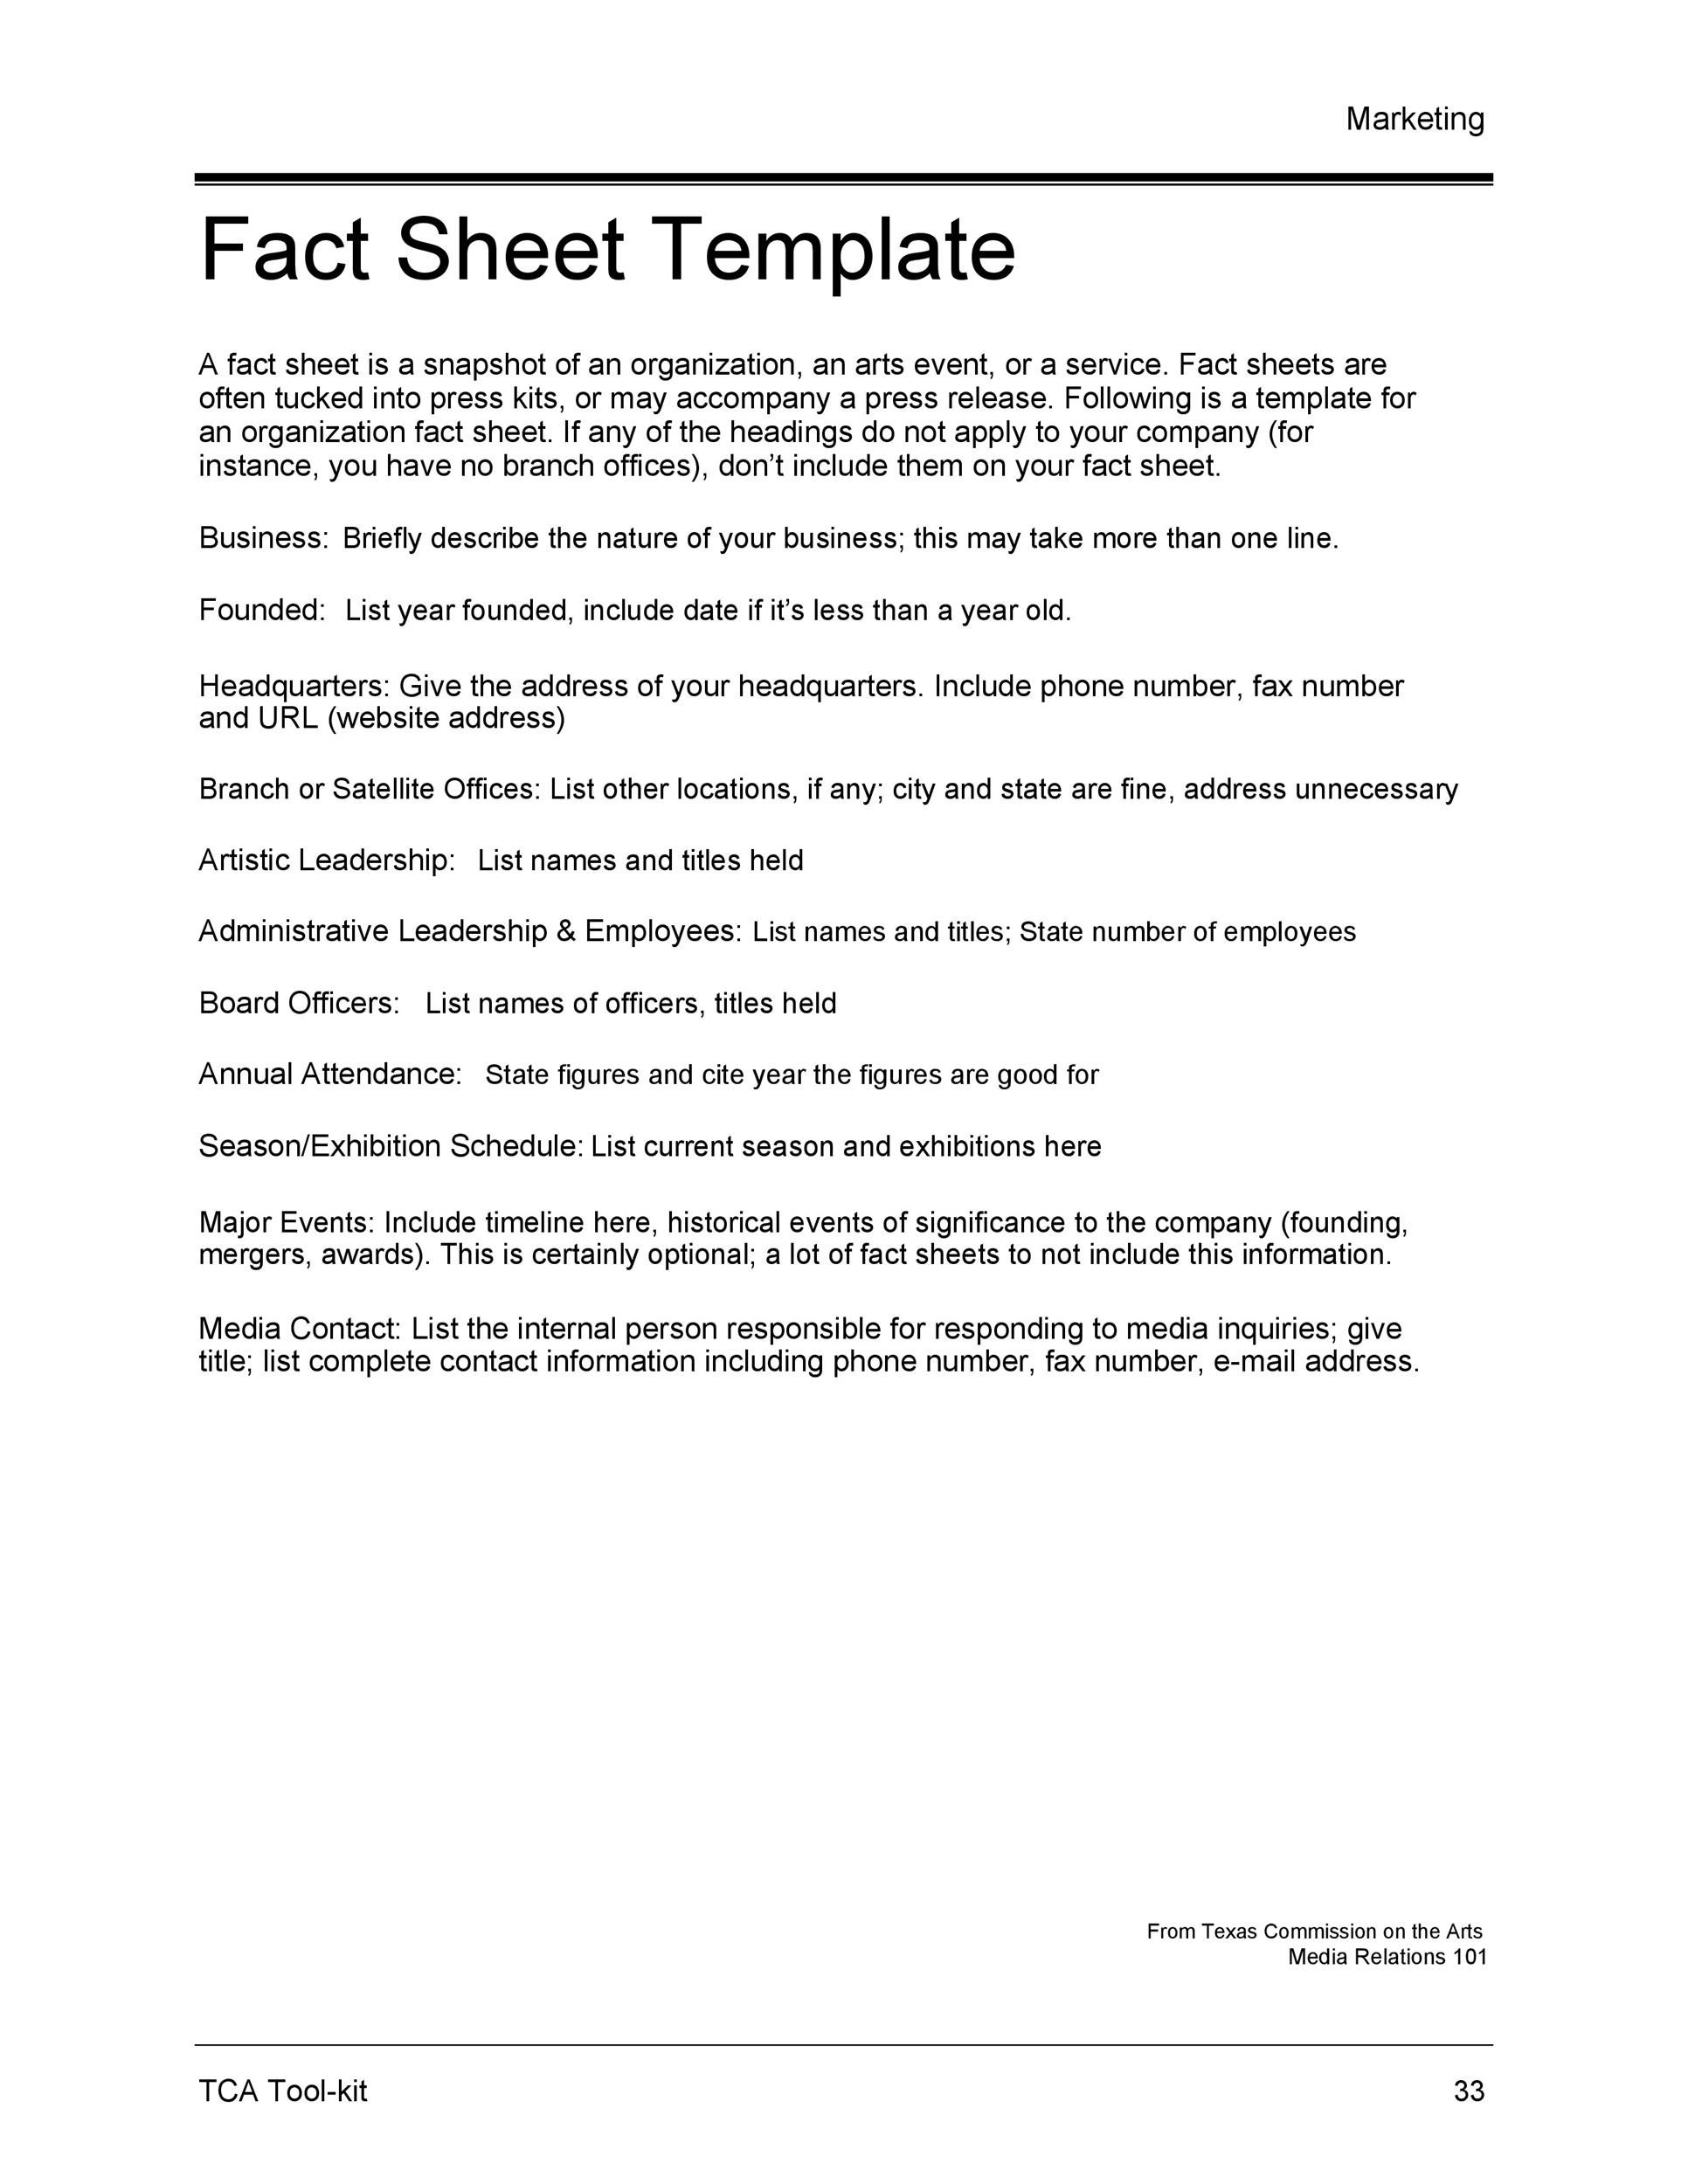 60+ Beautiful Fact Sheet Templates, Examples and Designs